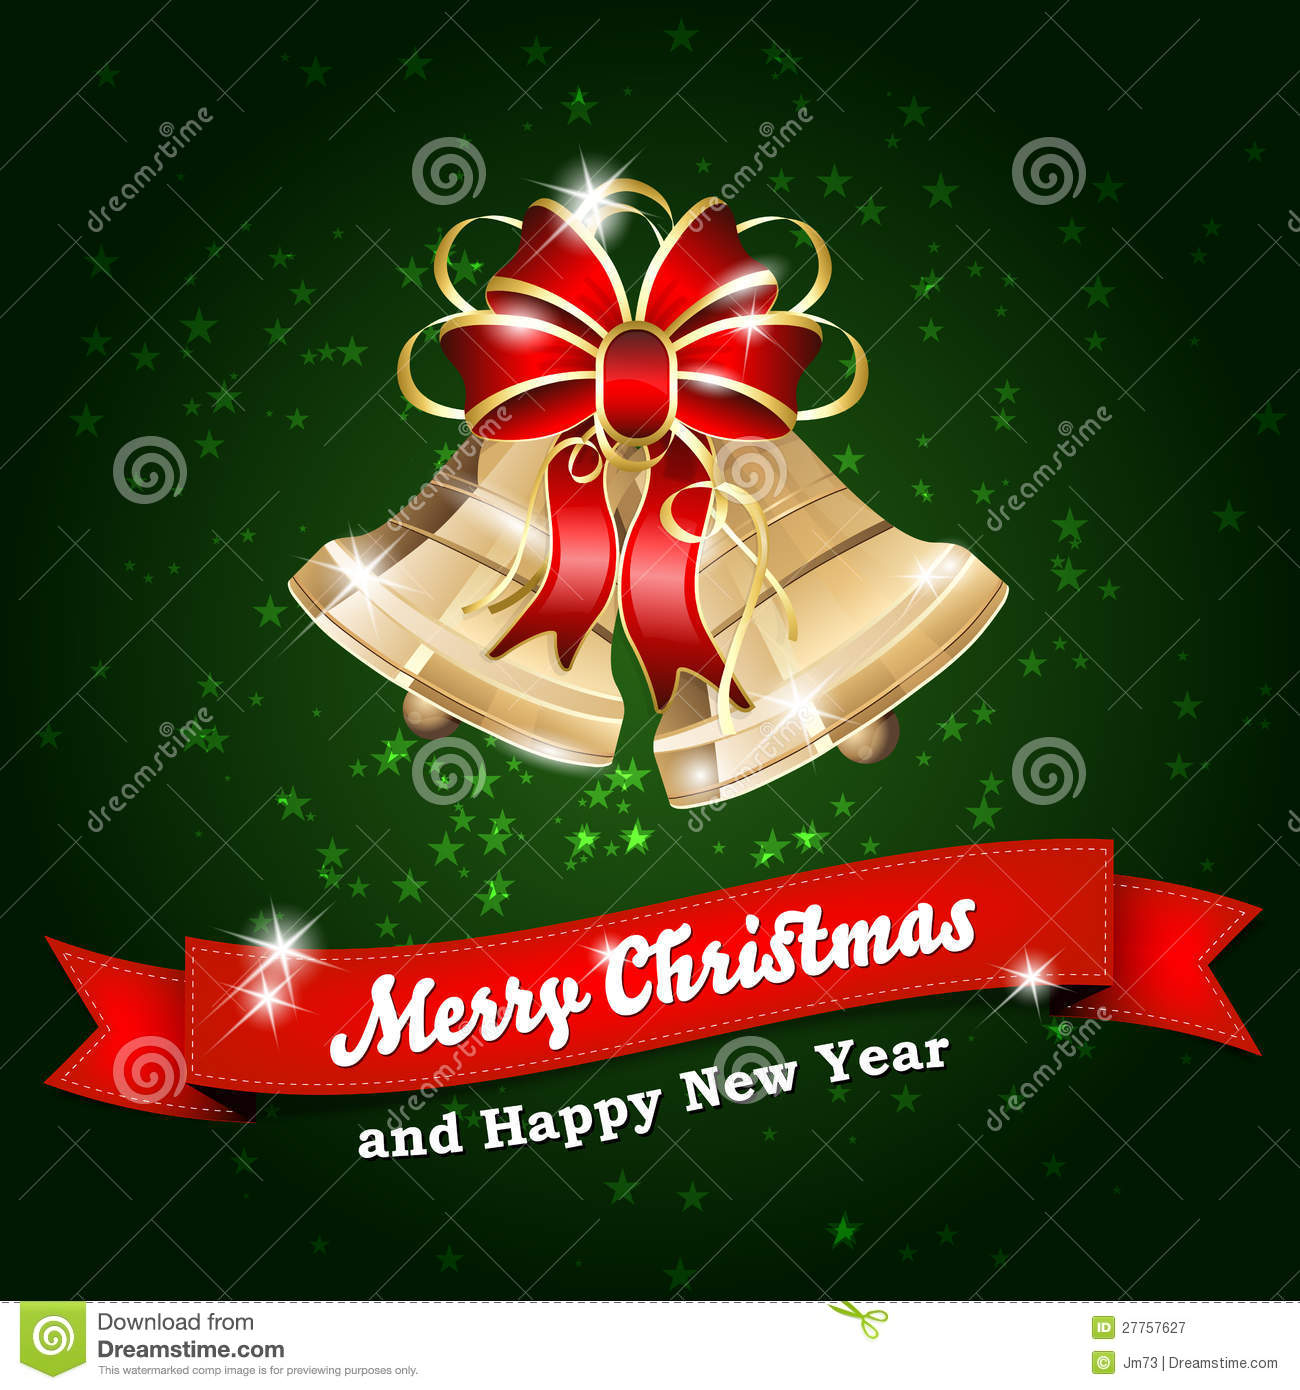 Merry Christmas And Happy New Year Clipart Free Clipground